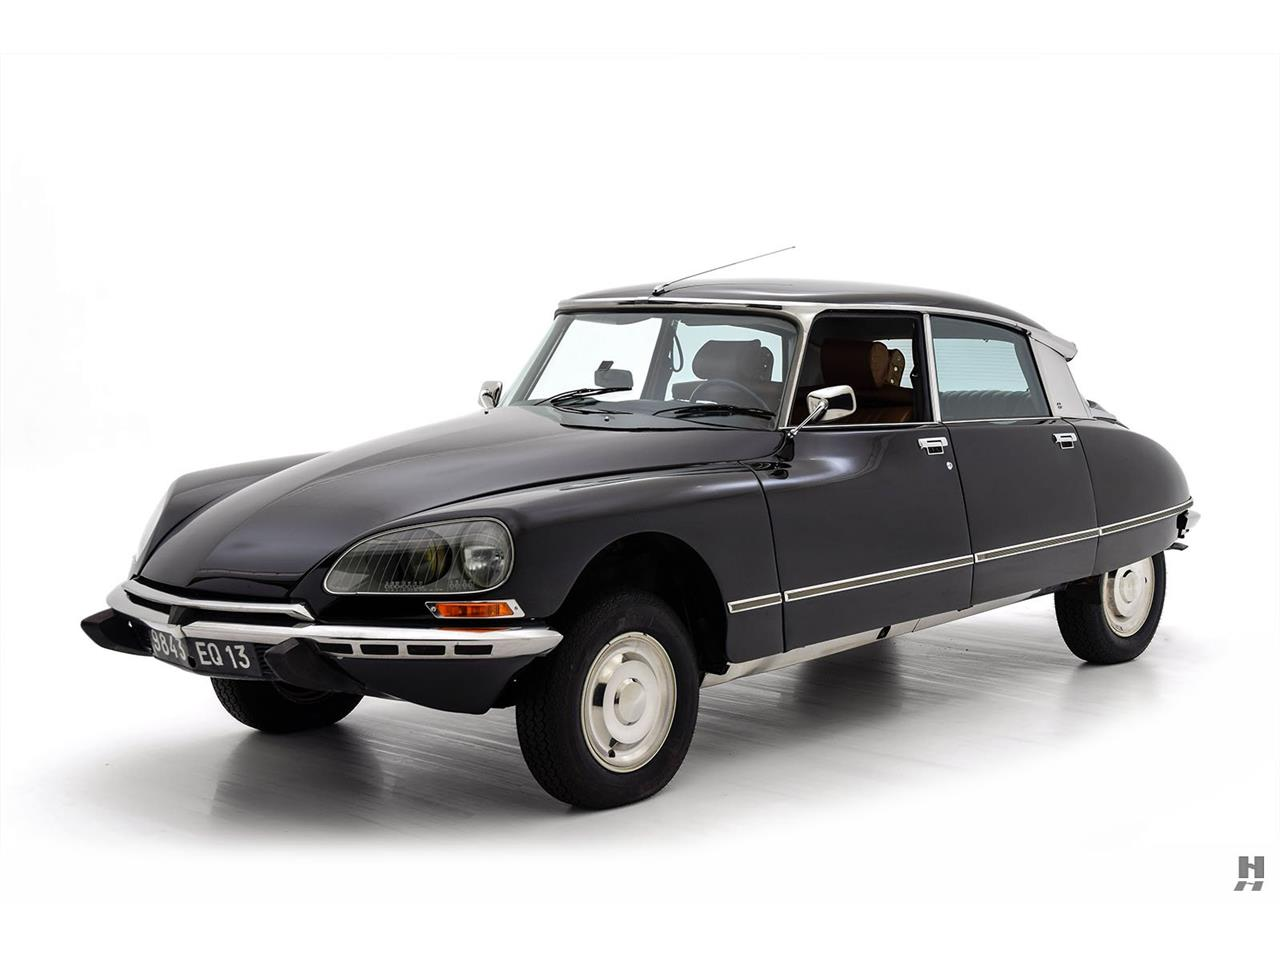 Large Picture of 1972 Citroen DS21 Pallas - $59,500.00 Offered by Hyman Ltd. Classic Cars - P3WY